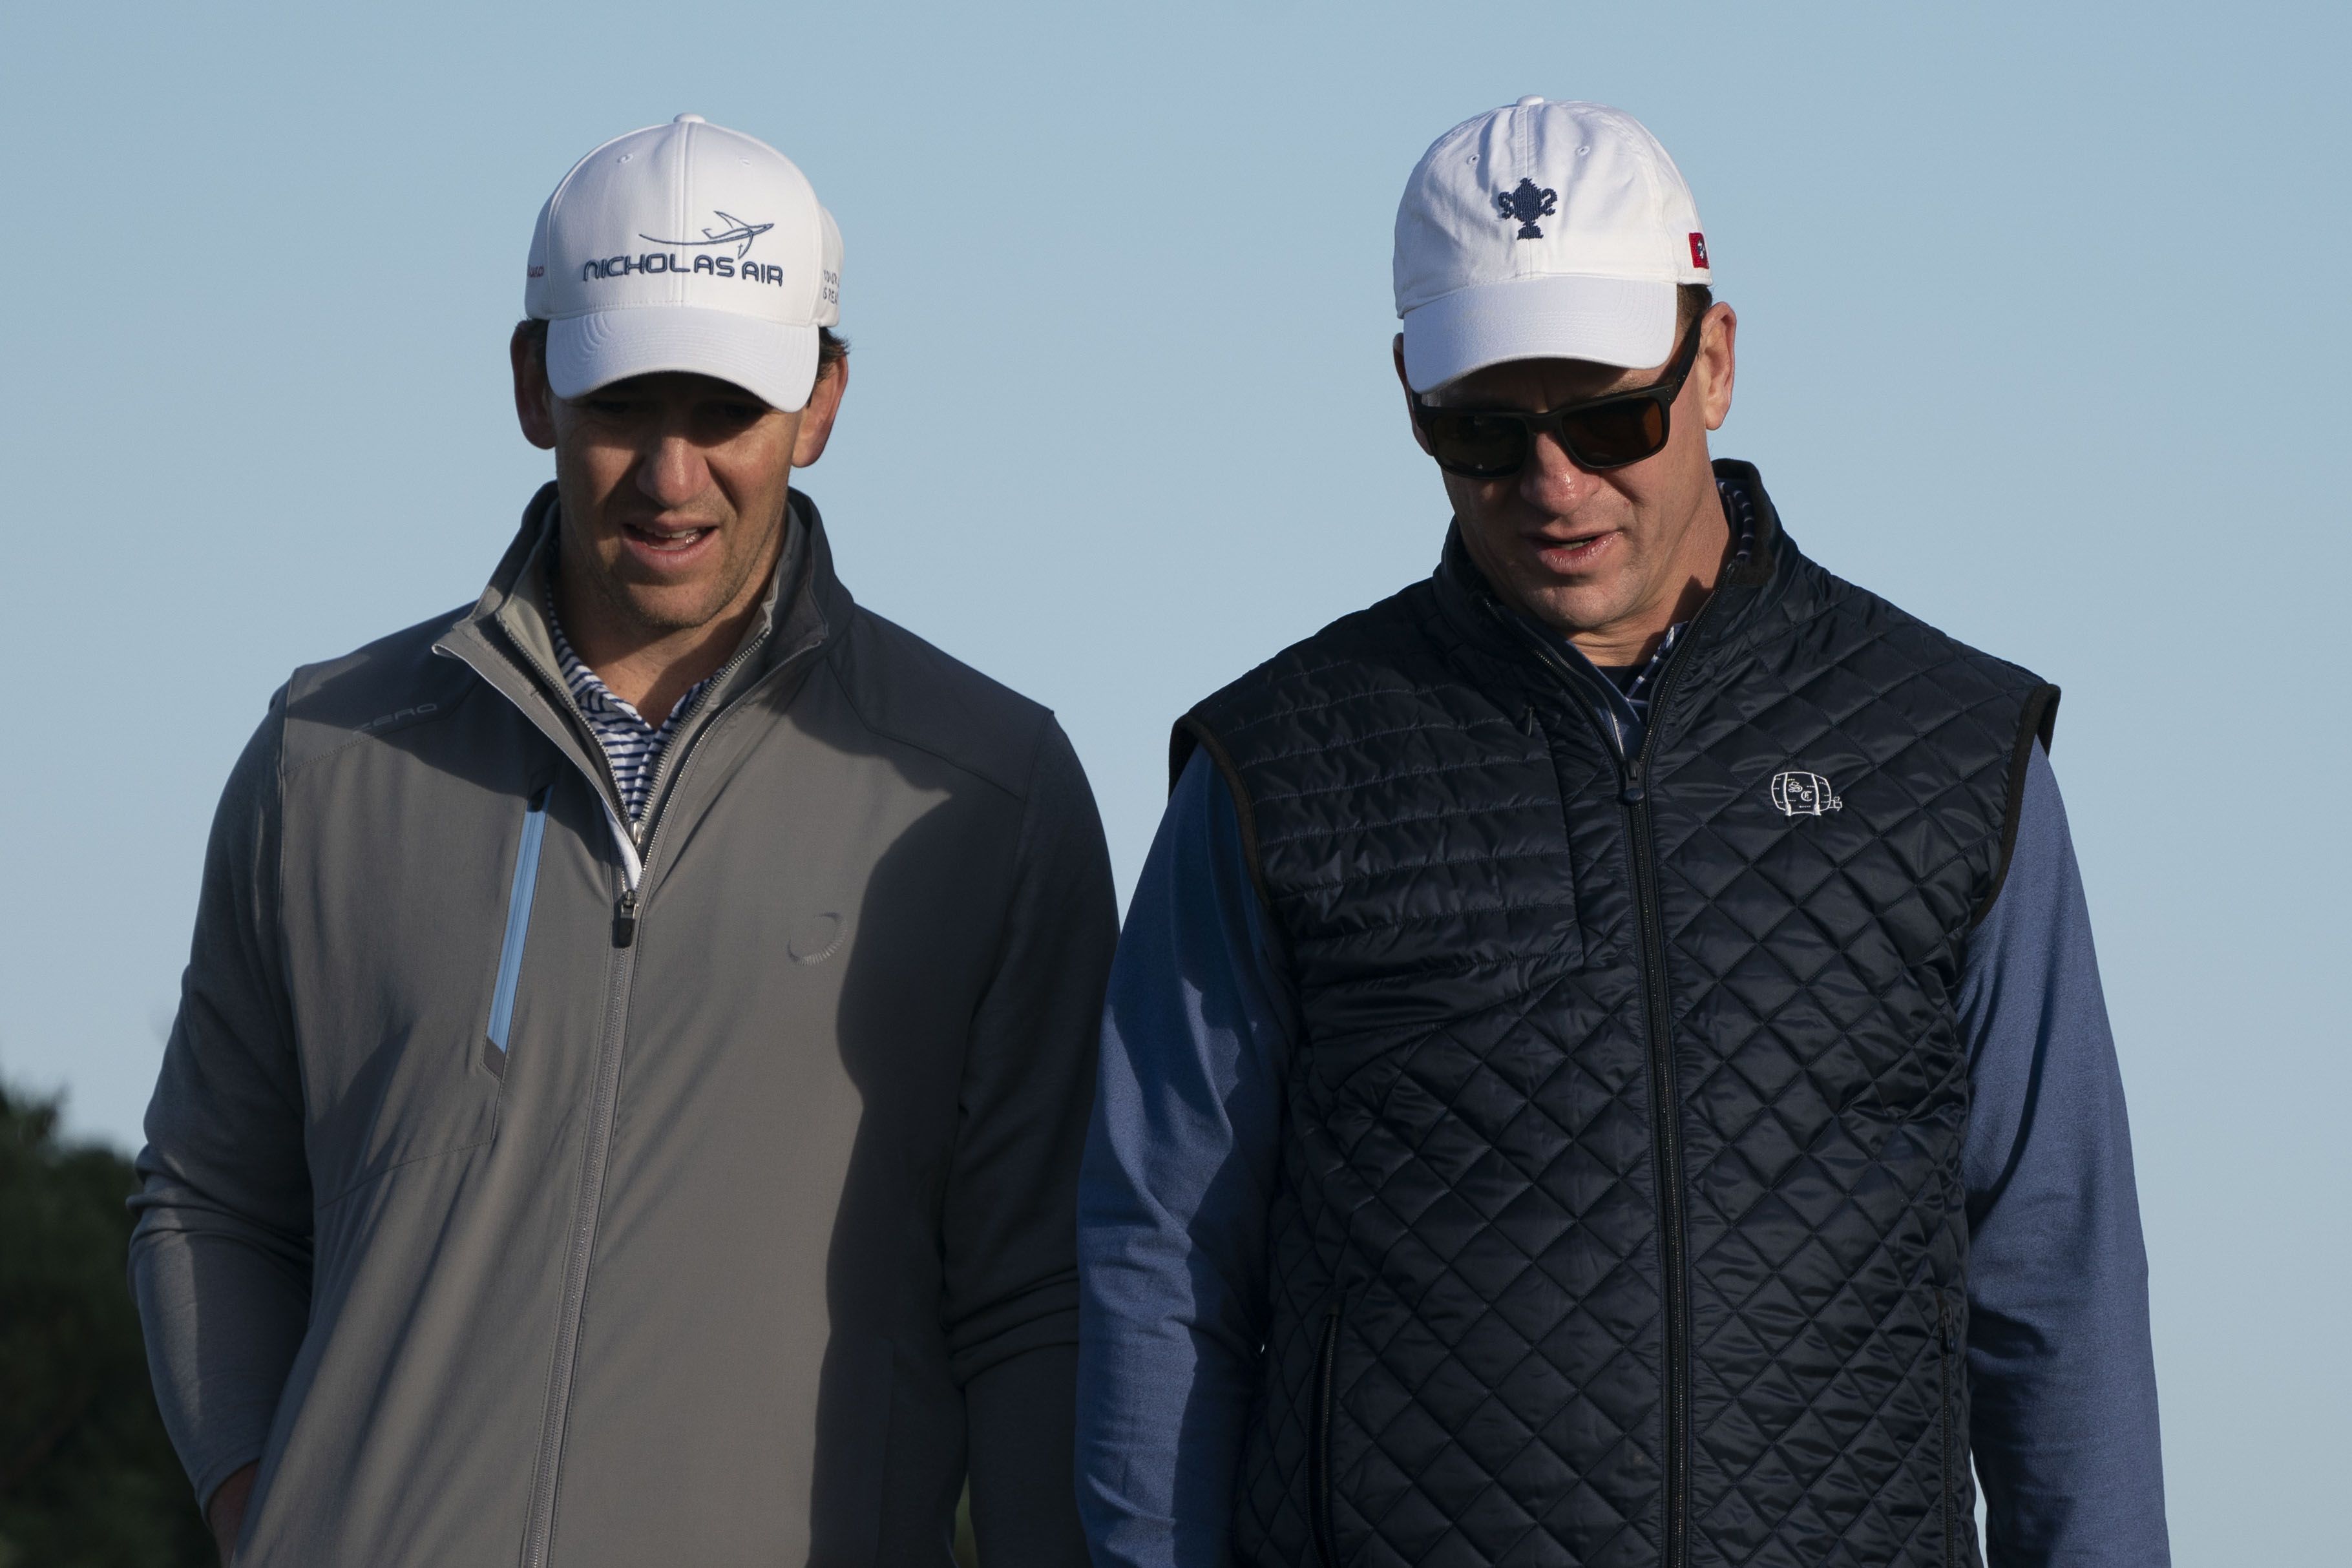 Eli Manning (left) and Peyton Manning (right) walk on the 11th hole during the second round of the AT&T Pebble Beach Pro-Am golf tournament at Monterey Peninsula Country Club - Shore Course.